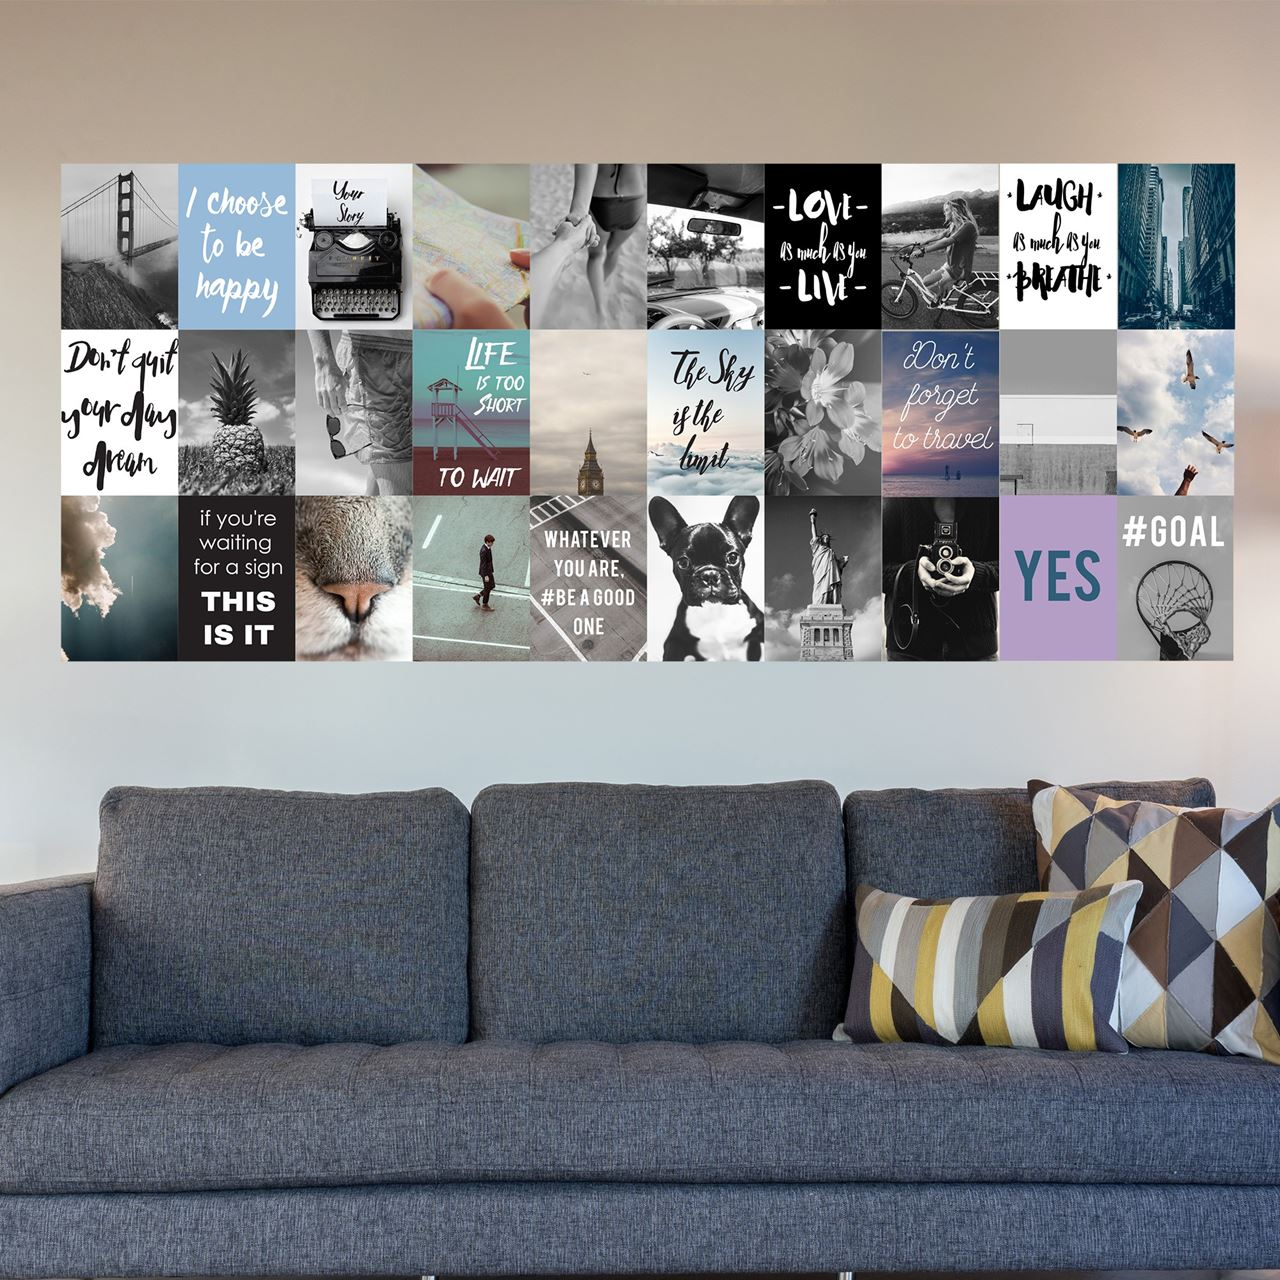 Channeldistribution walplus muur decoratie sticker foto en quote collage - Verwijderbare decoratieve muur ...